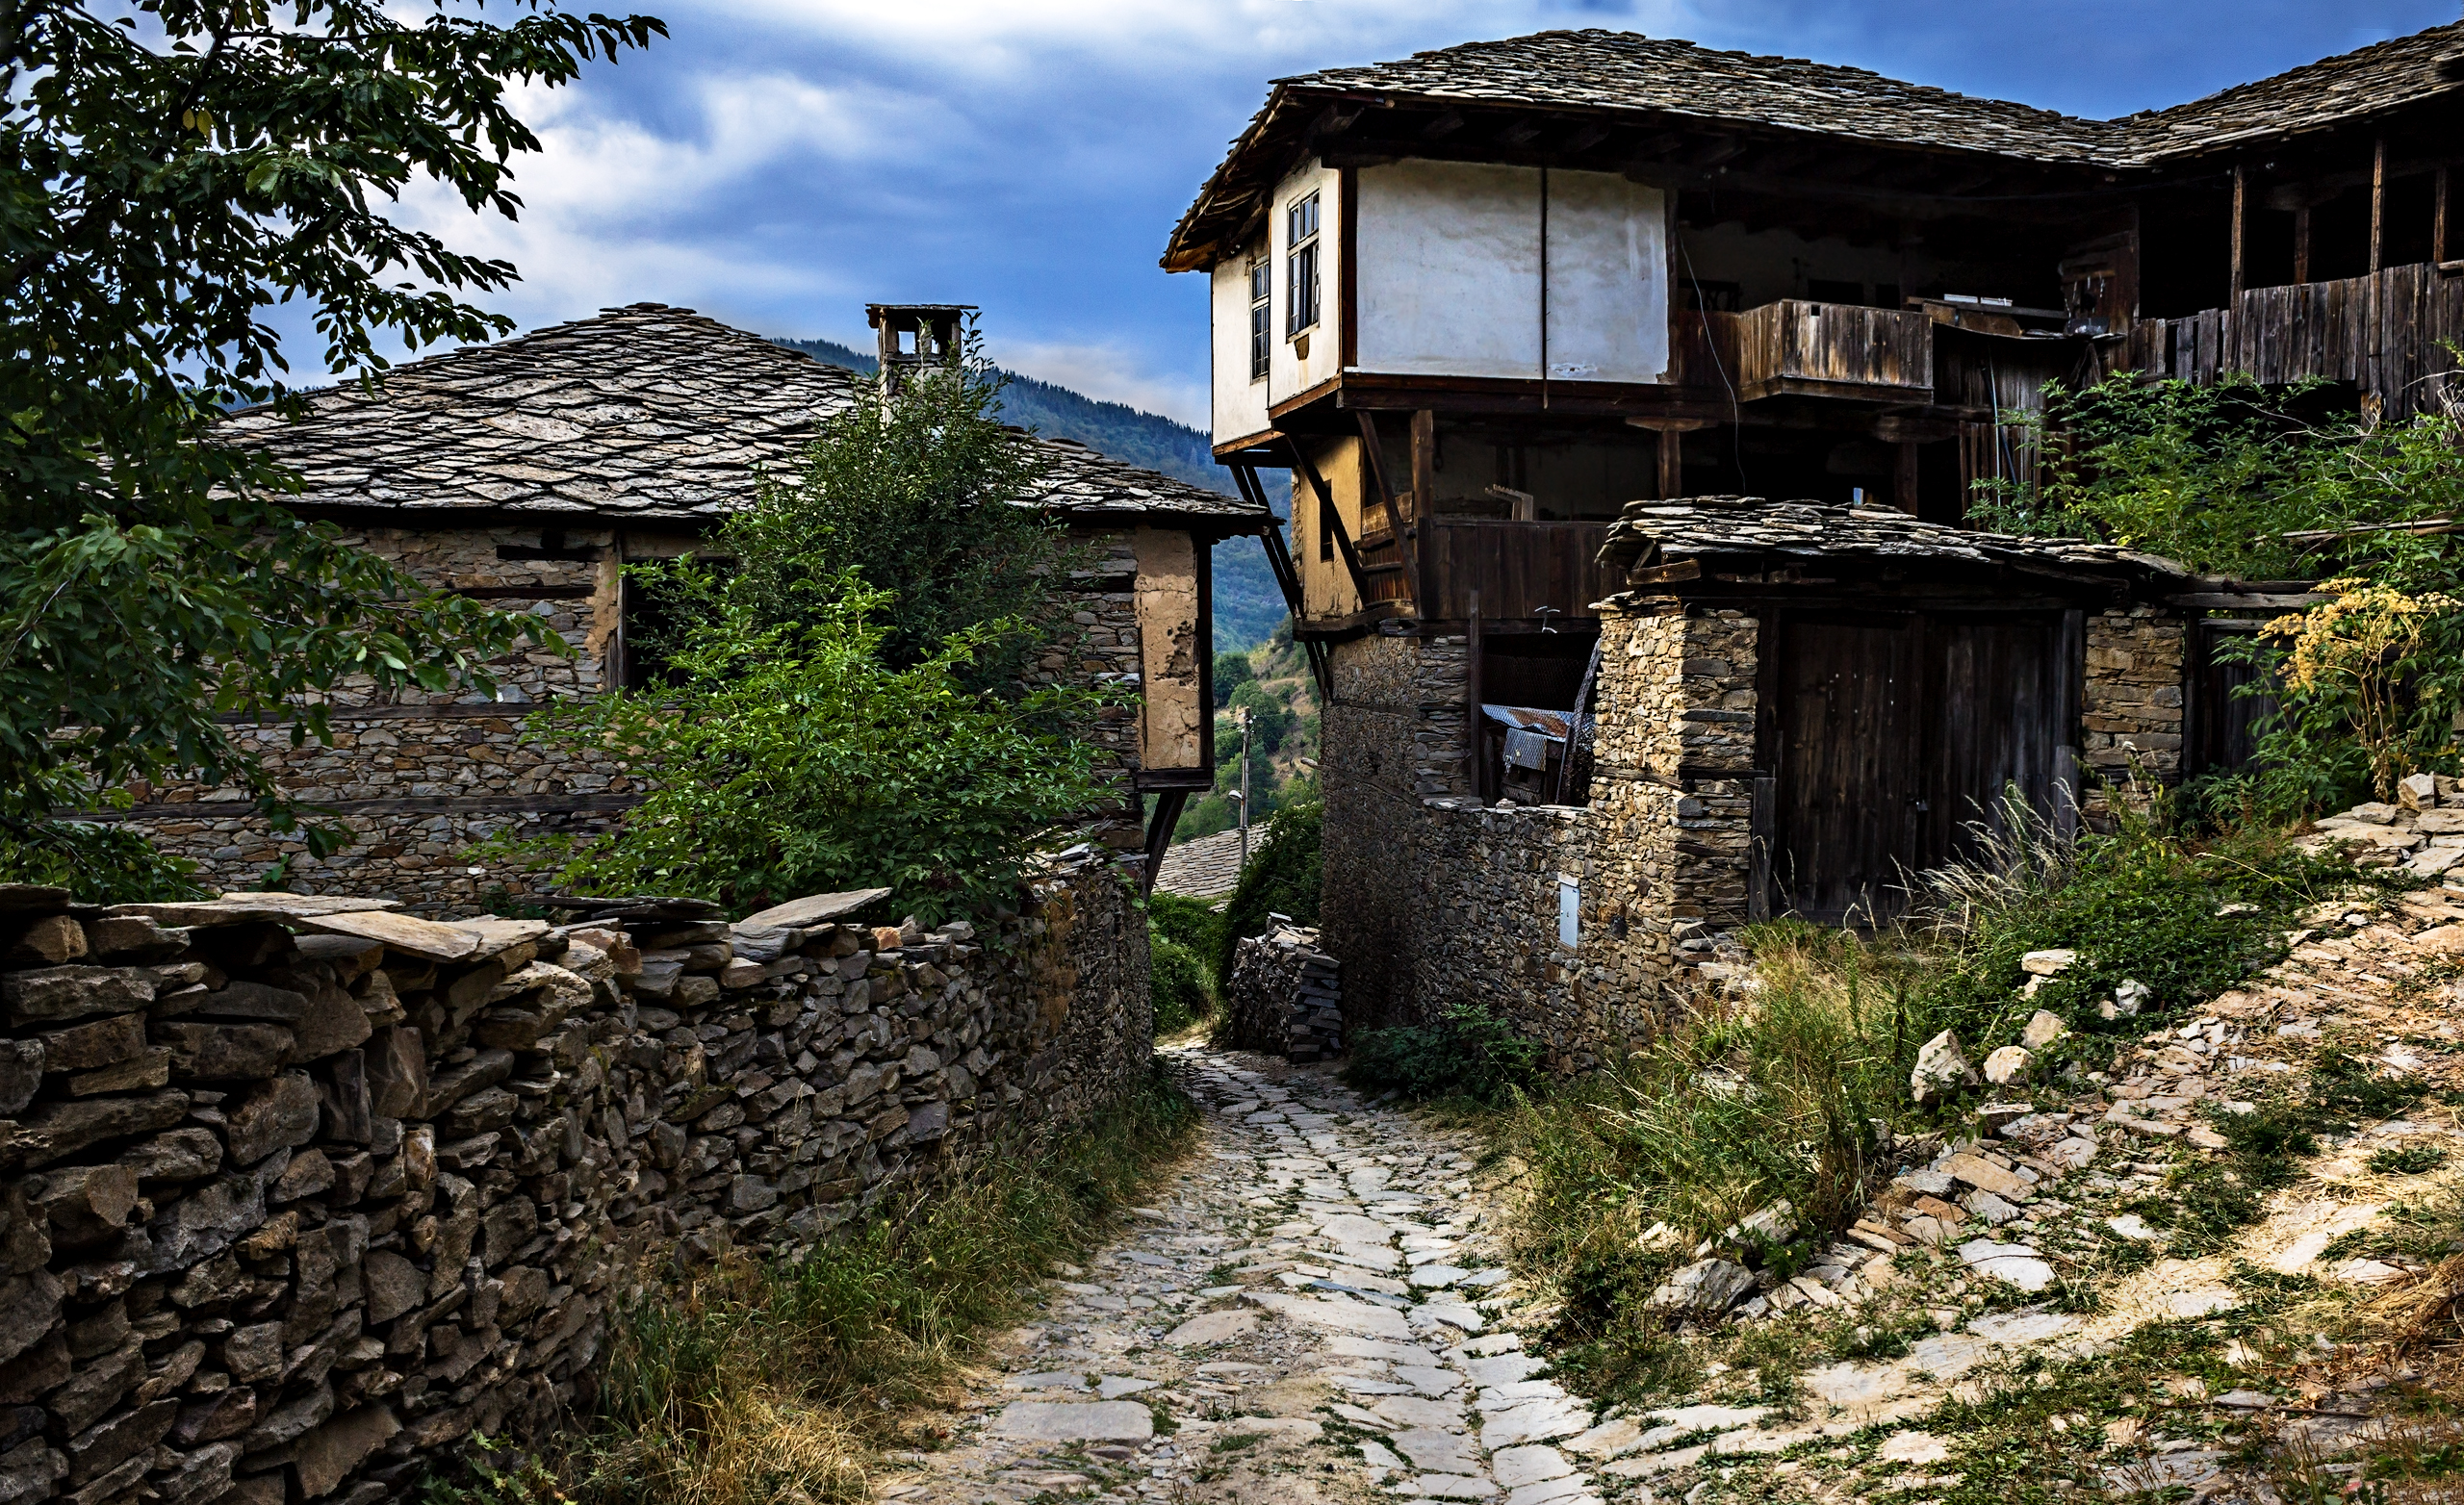 kovachevitsa_street_and_houses